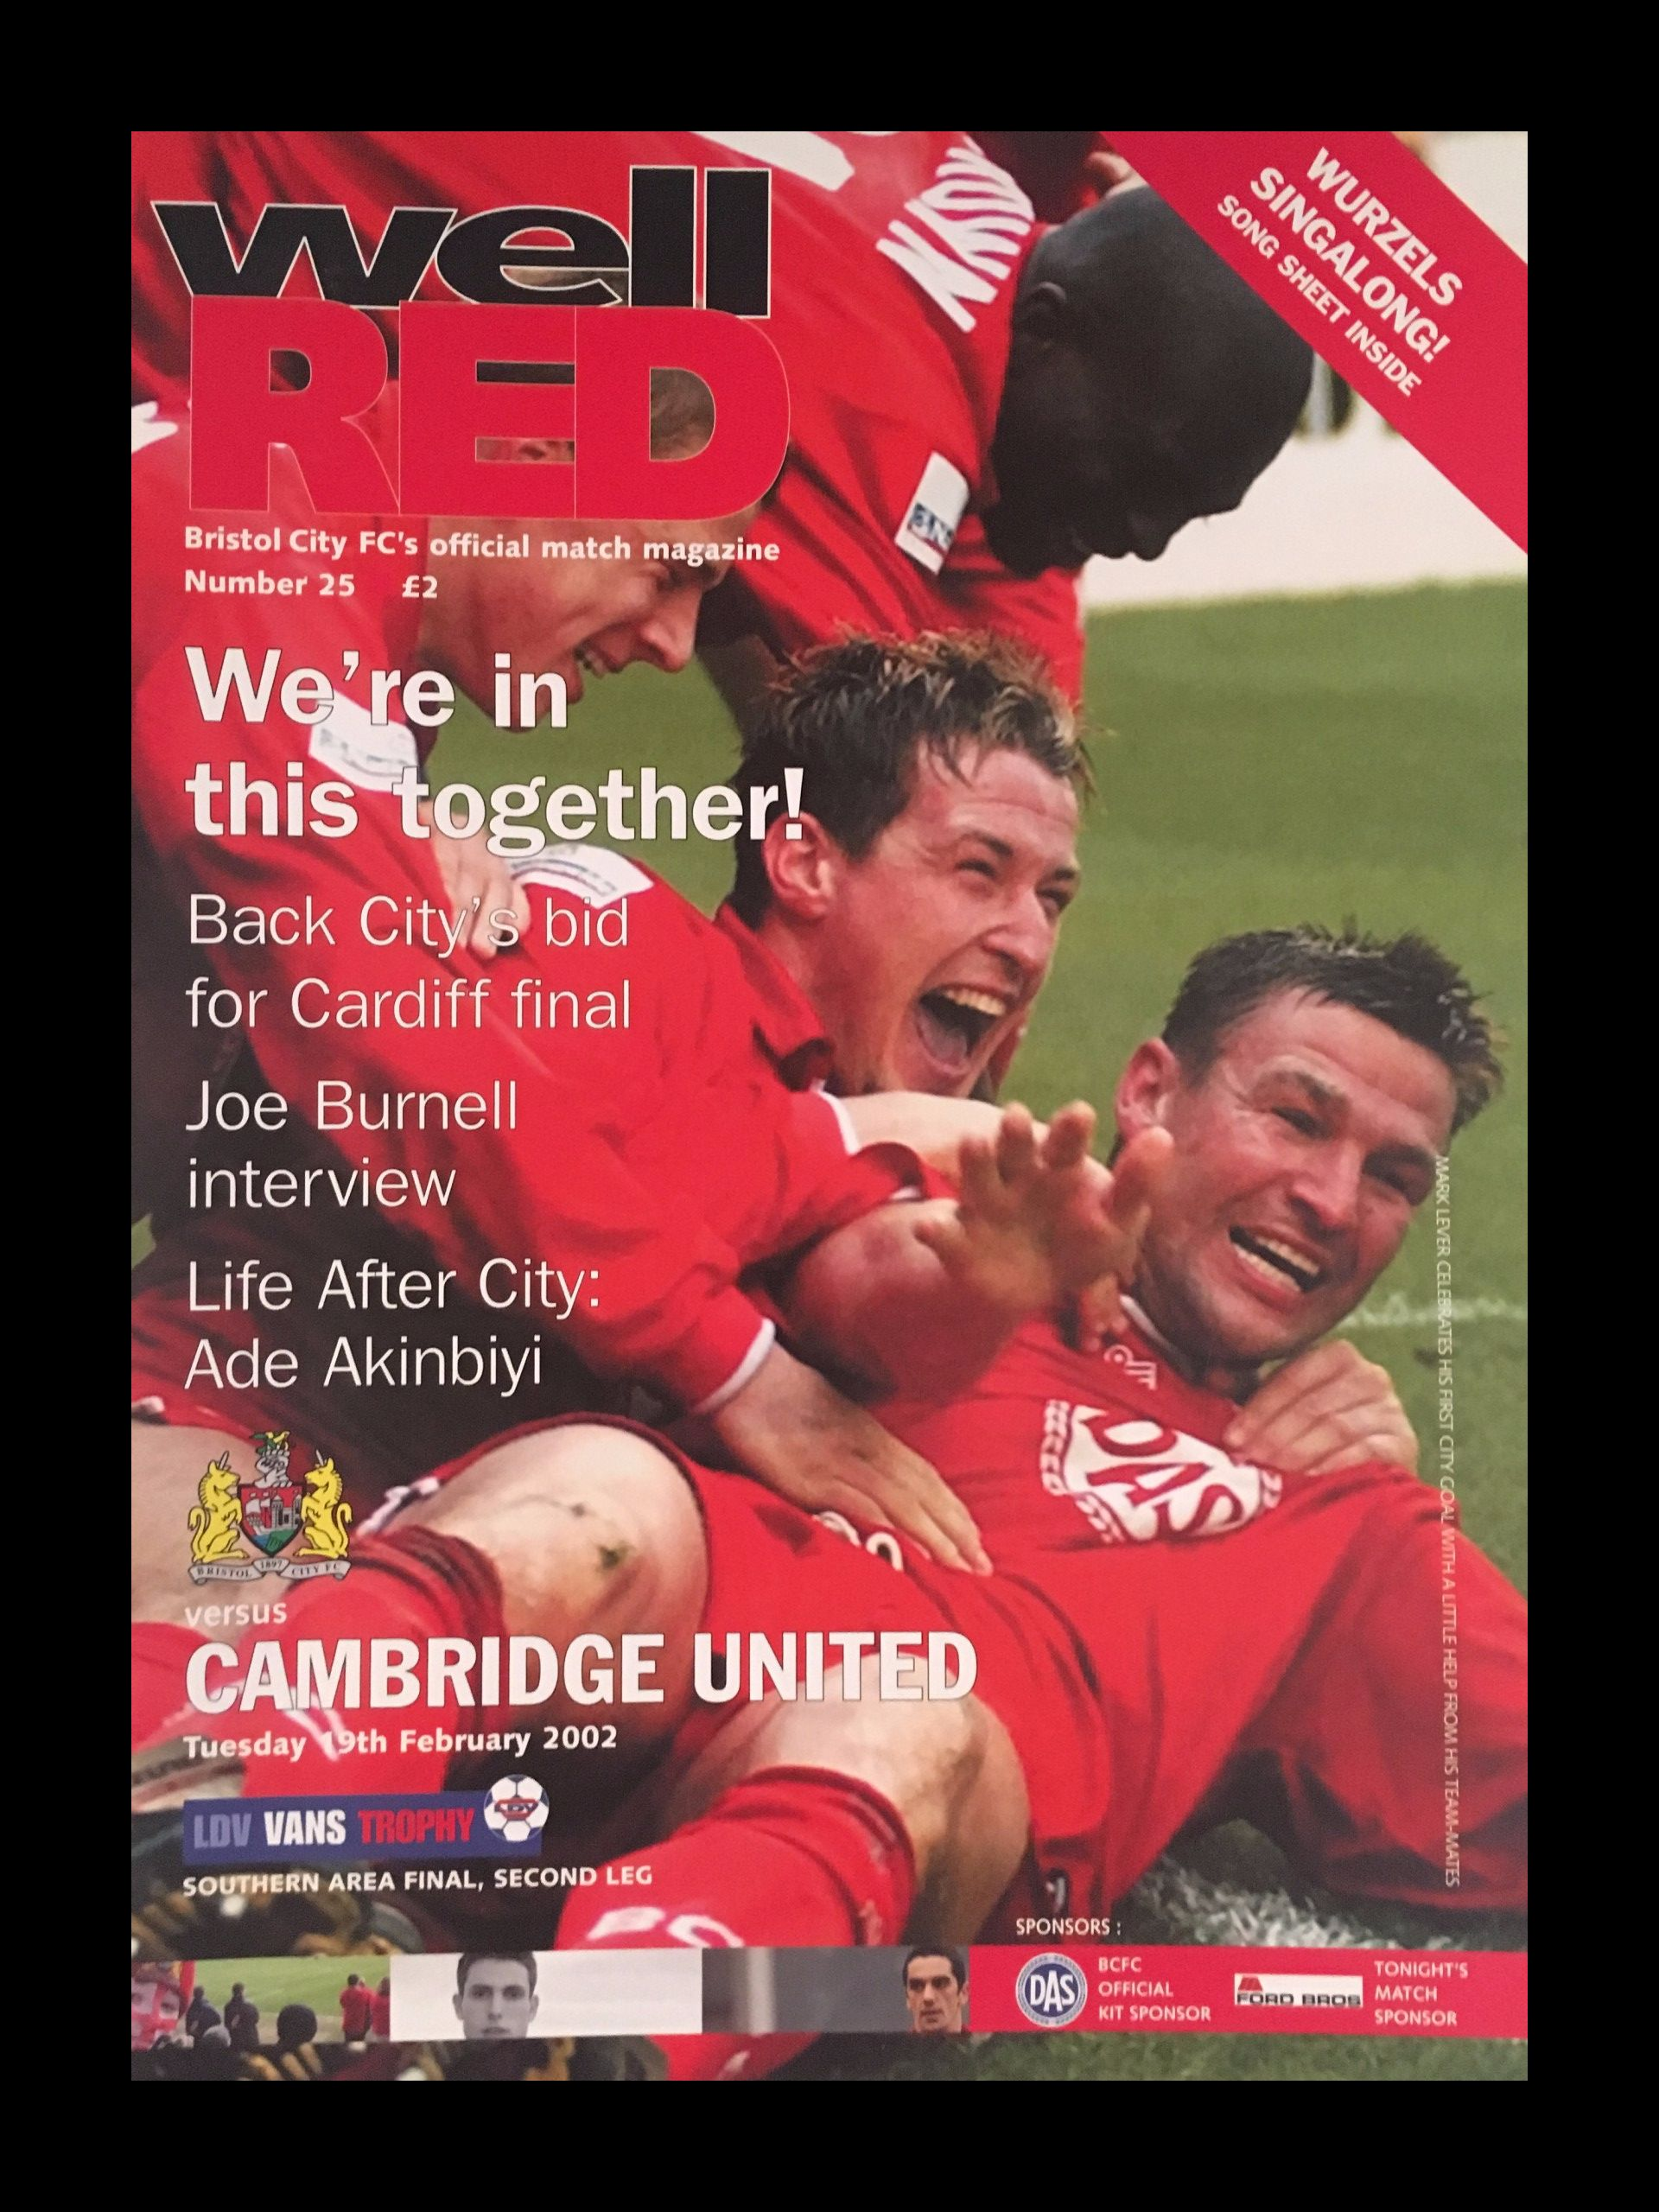 Bristol City v Cambridge United 19-02-2002 Programme